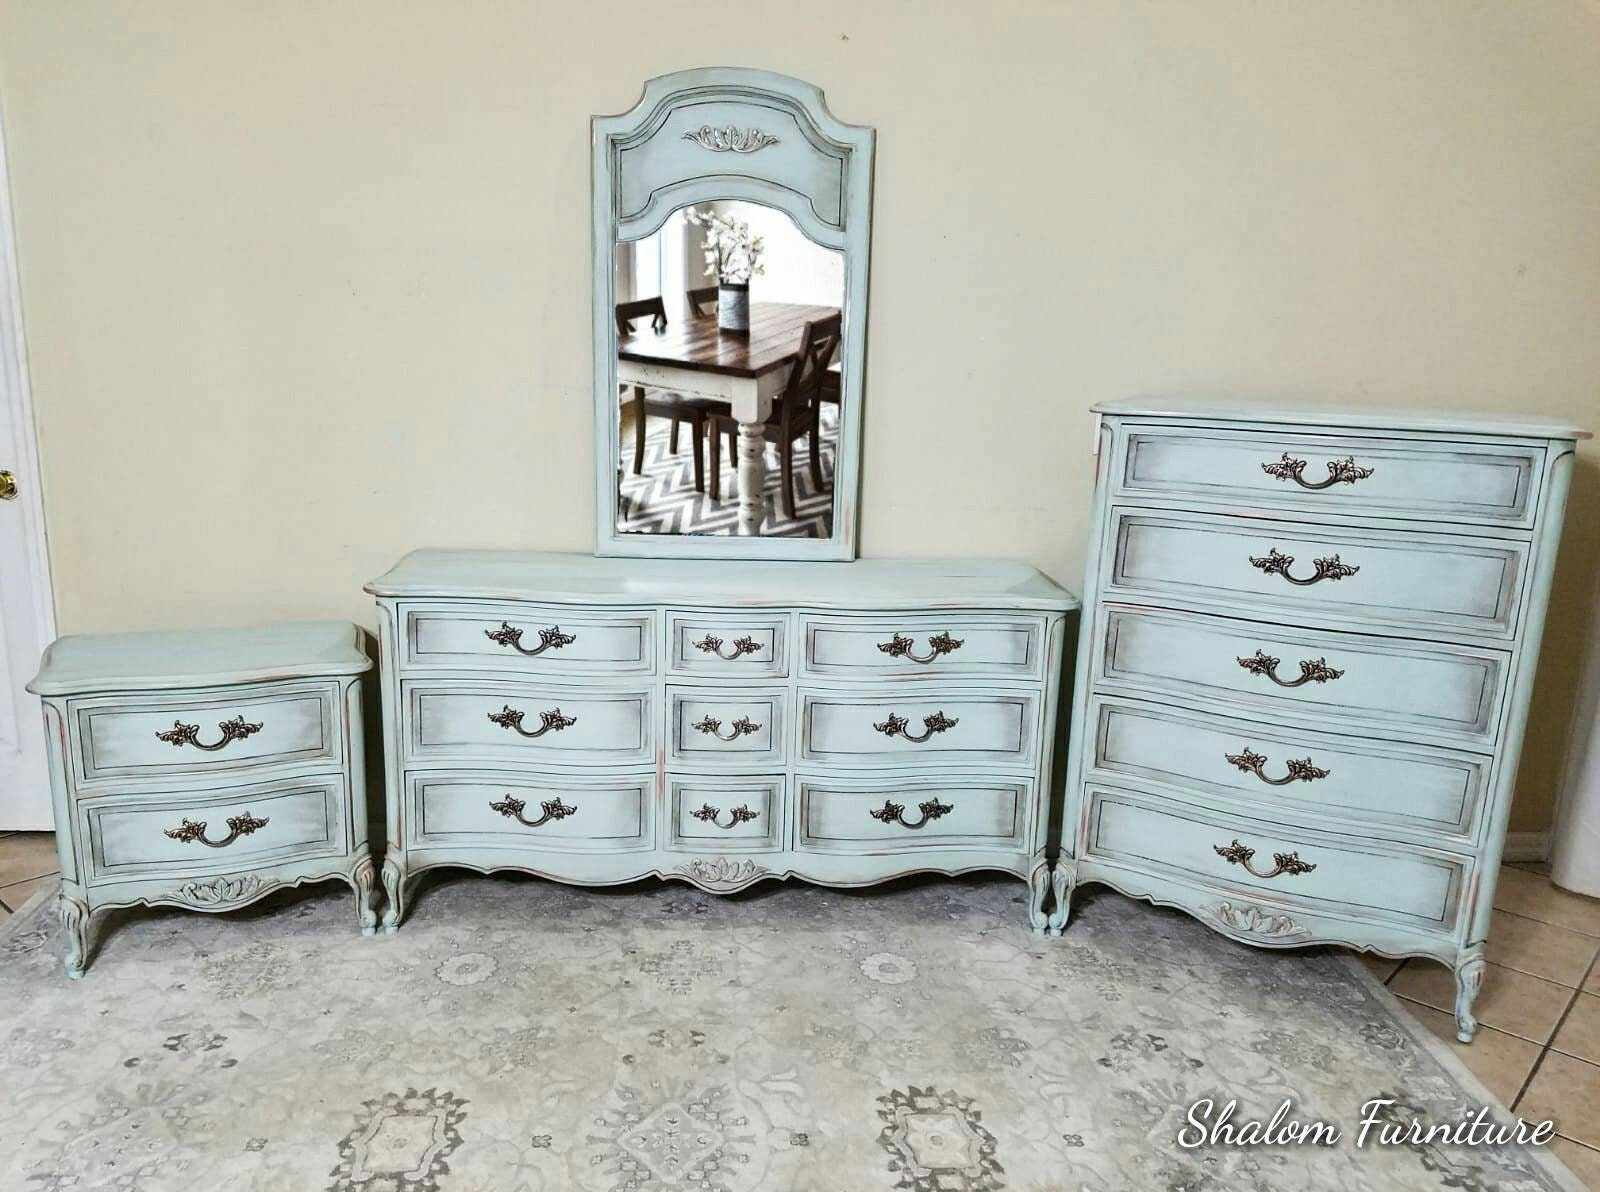 On sale!Available! Shabby chic farmhouse, rustic, antique  dresser, armoire, bedroom set, hutch, chest of drawers tall boy french provincial for sale